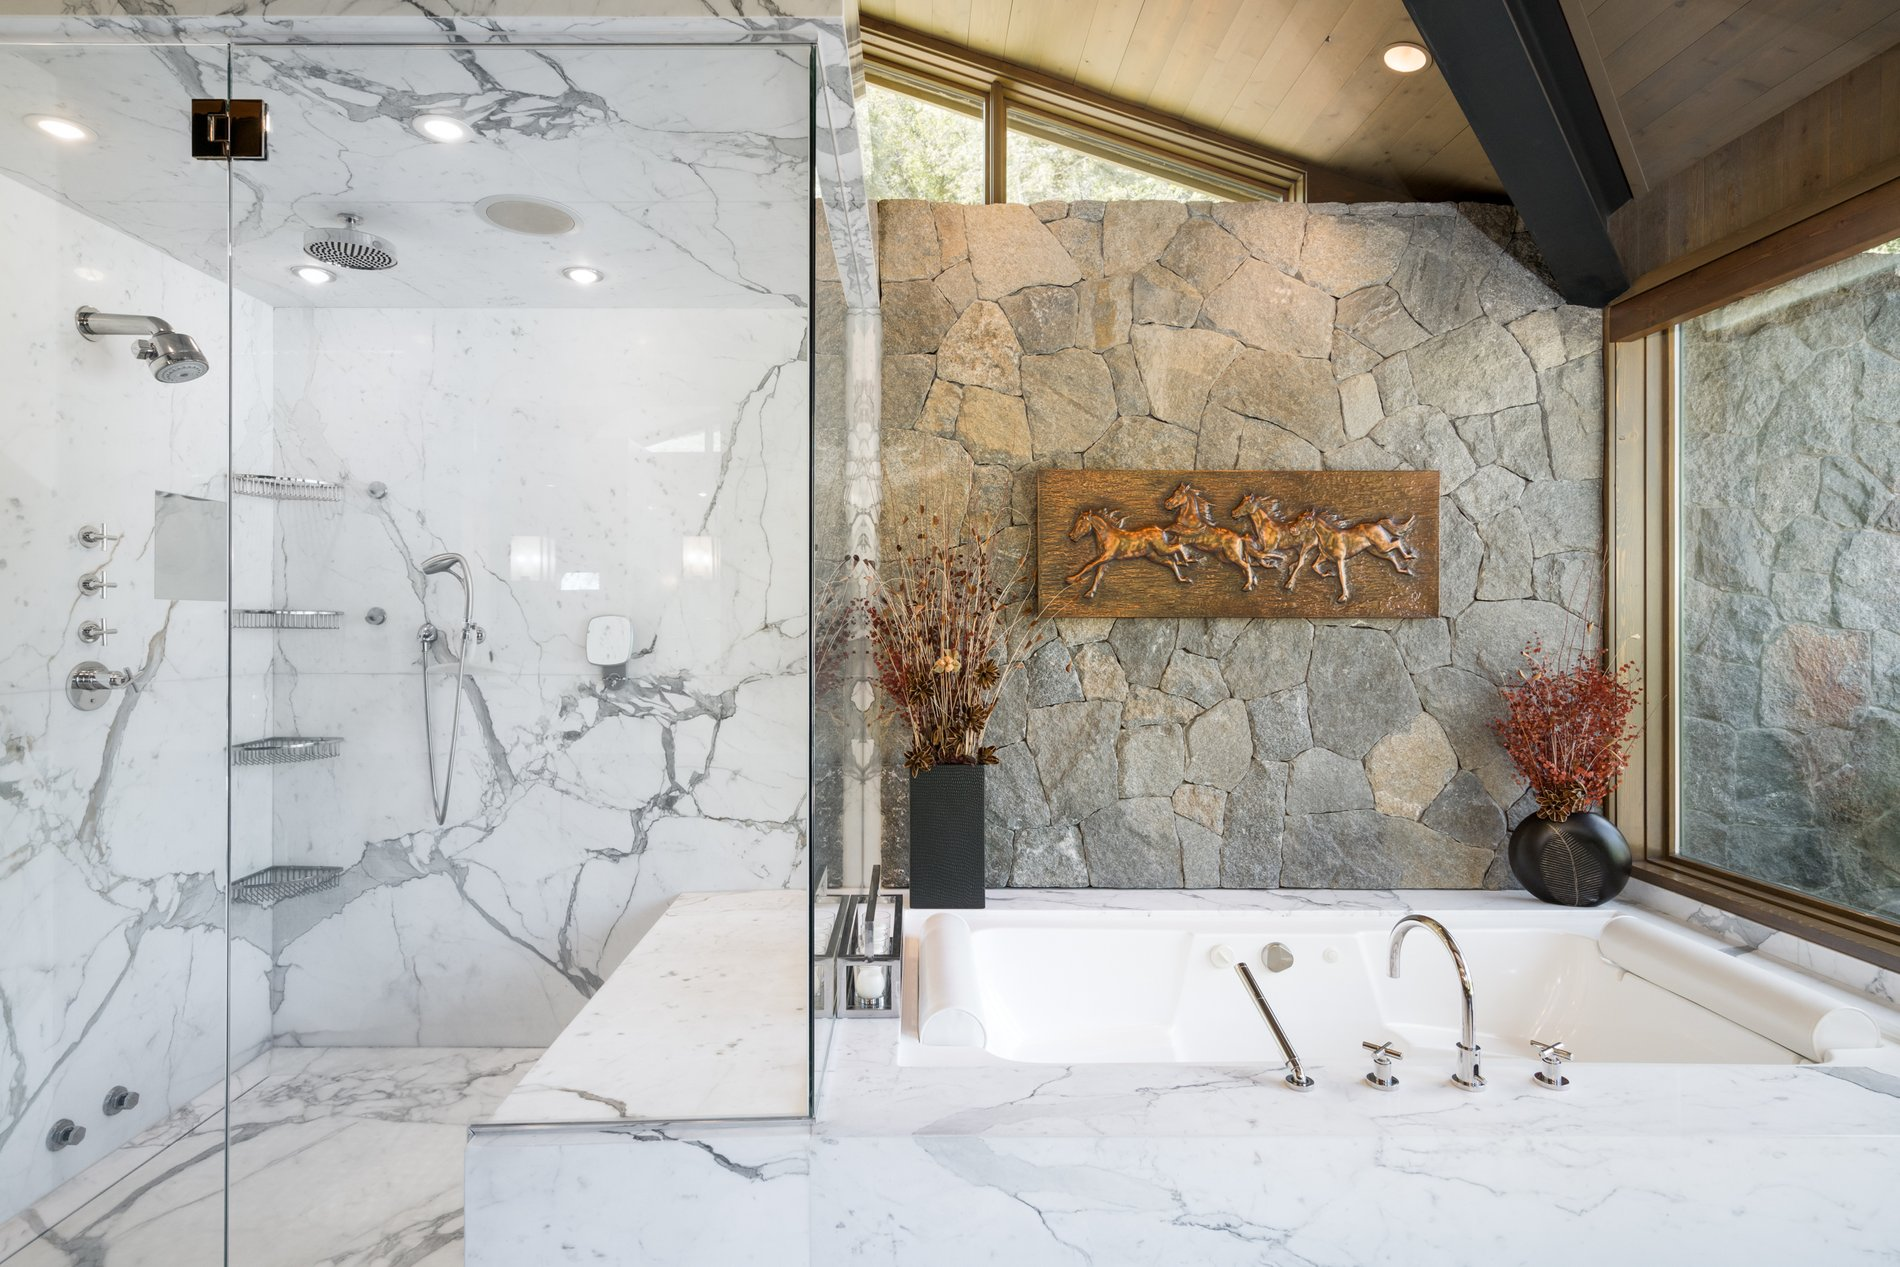 Soaking tub surrounded by marble slabs with a walk in glass enclosed shower and stone wall.